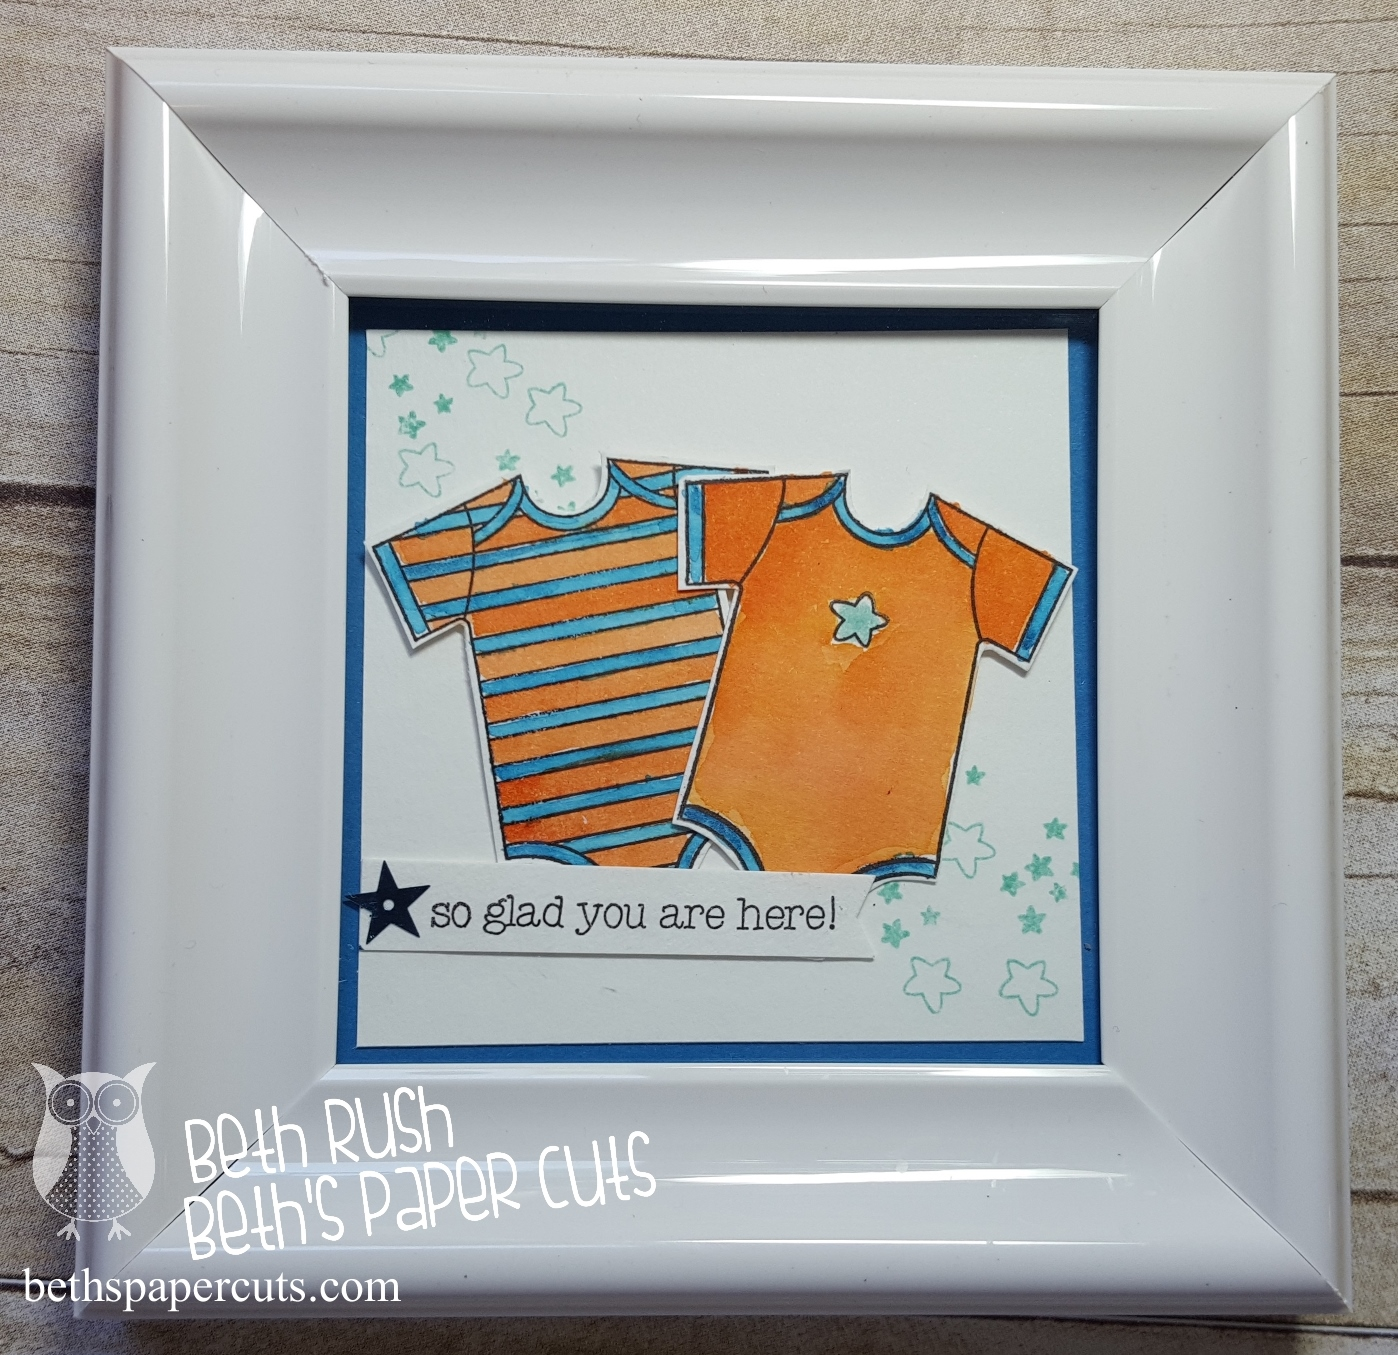 Hi Everyone I Thought Would Share A Little Frame Made To Go With Gift For Friend Who Had Twin Boys This Is Her First Baby And Remembered